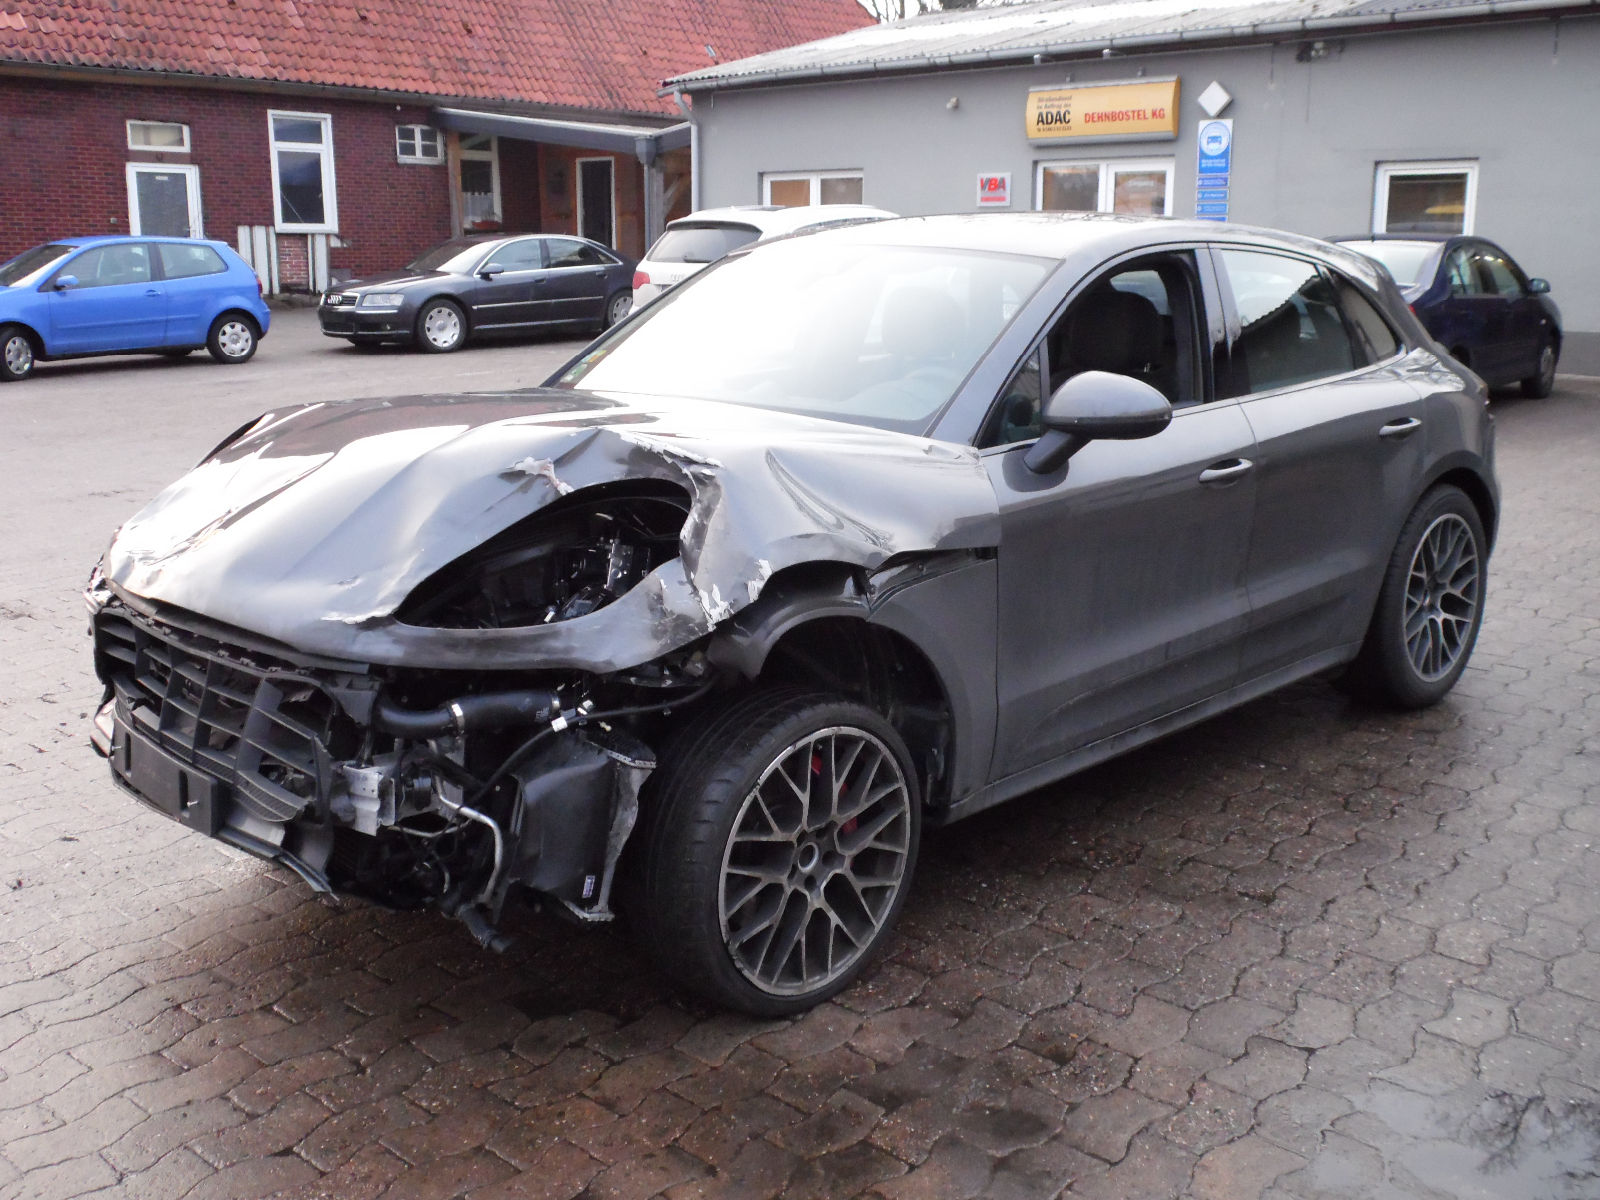 57 000 Damaged Porsche Macan Turbo Is Not A Bargain